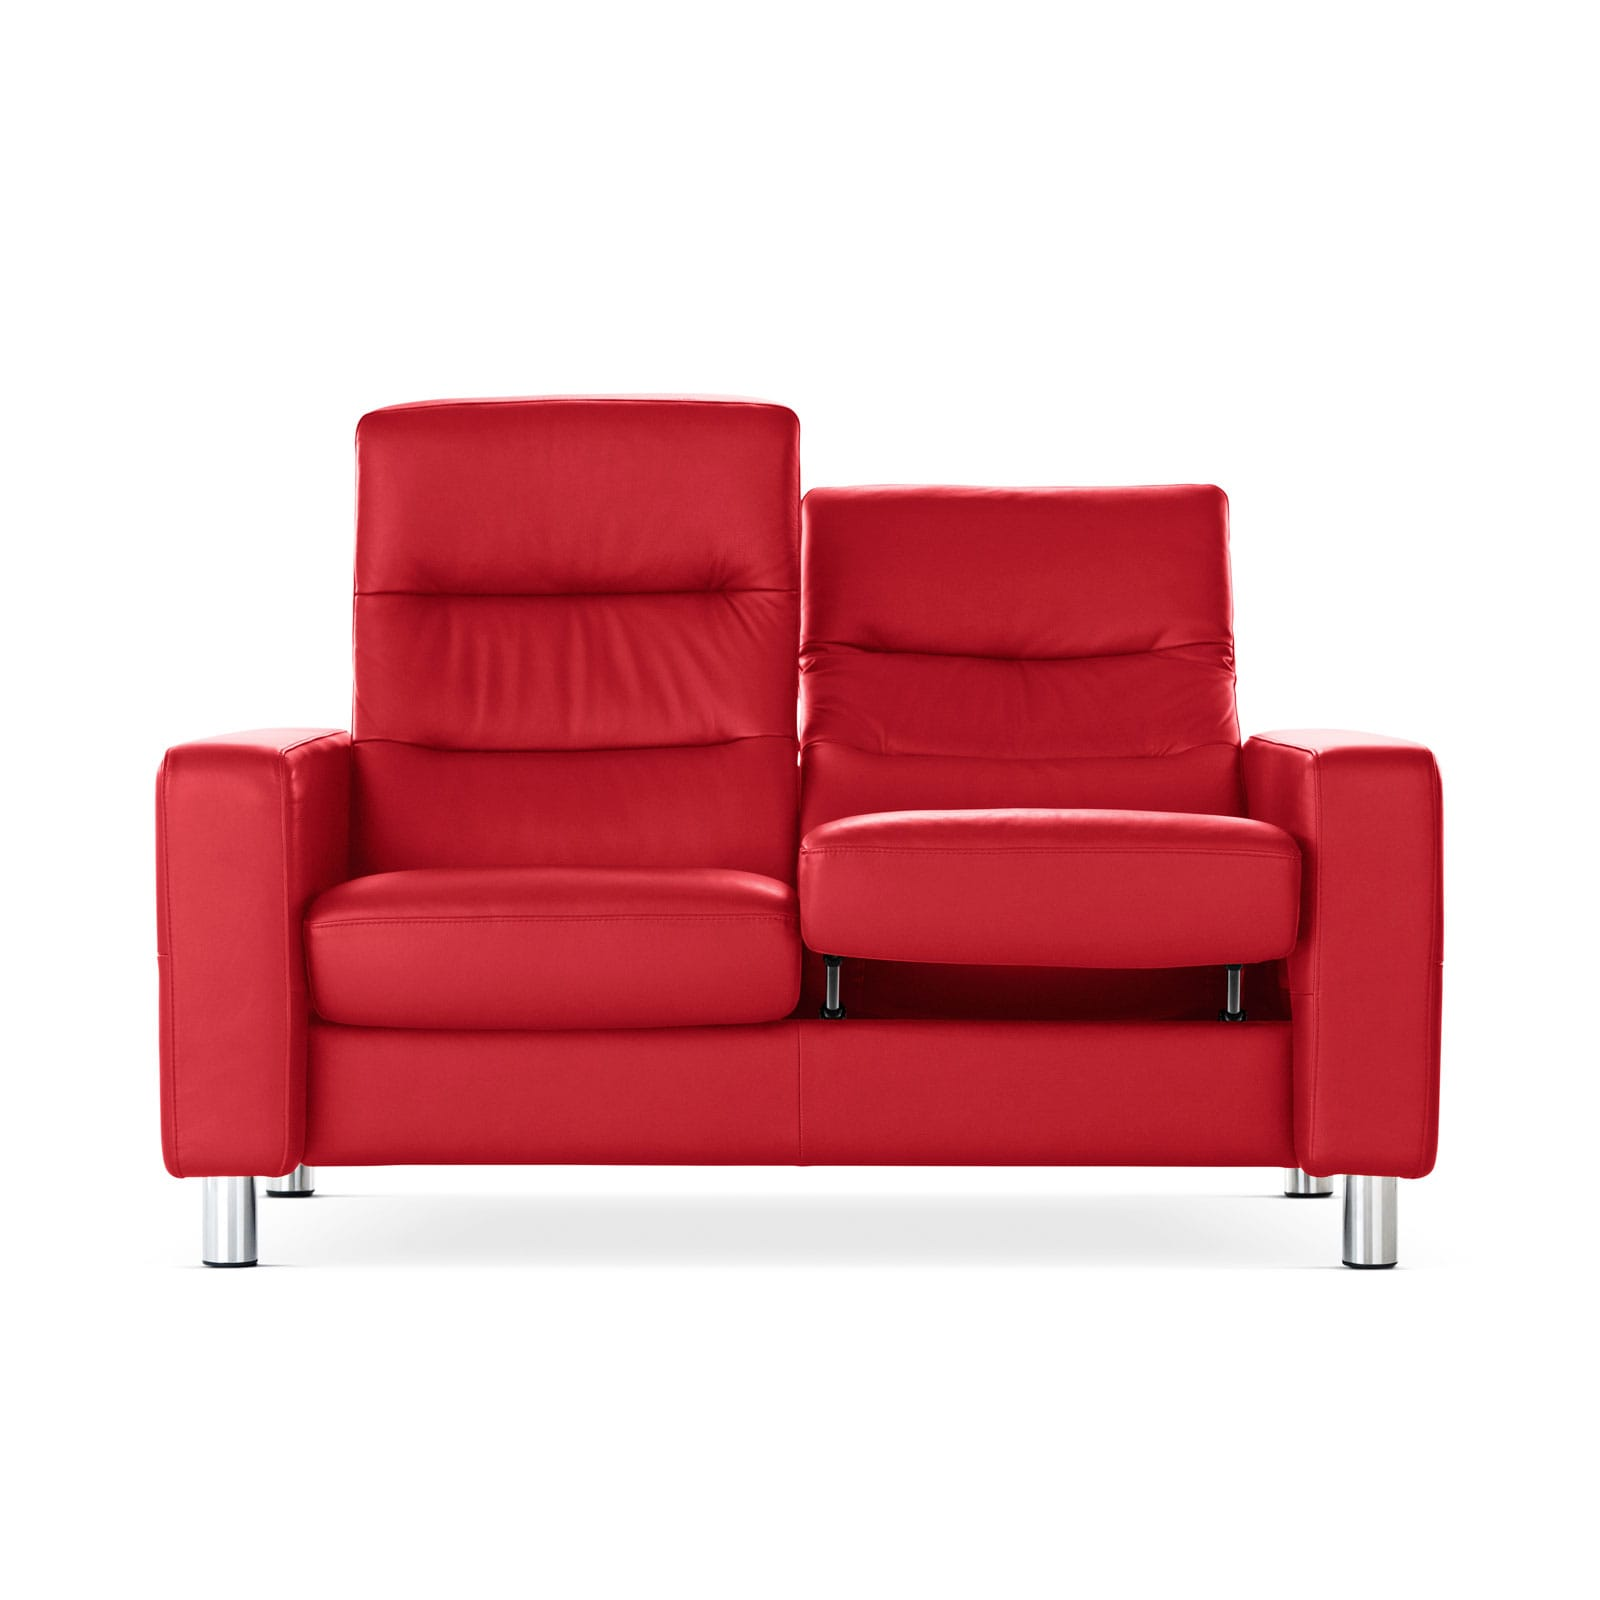 stressless sofa 2 sitzer wave hoch paloma tomato stressless. Black Bedroom Furniture Sets. Home Design Ideas